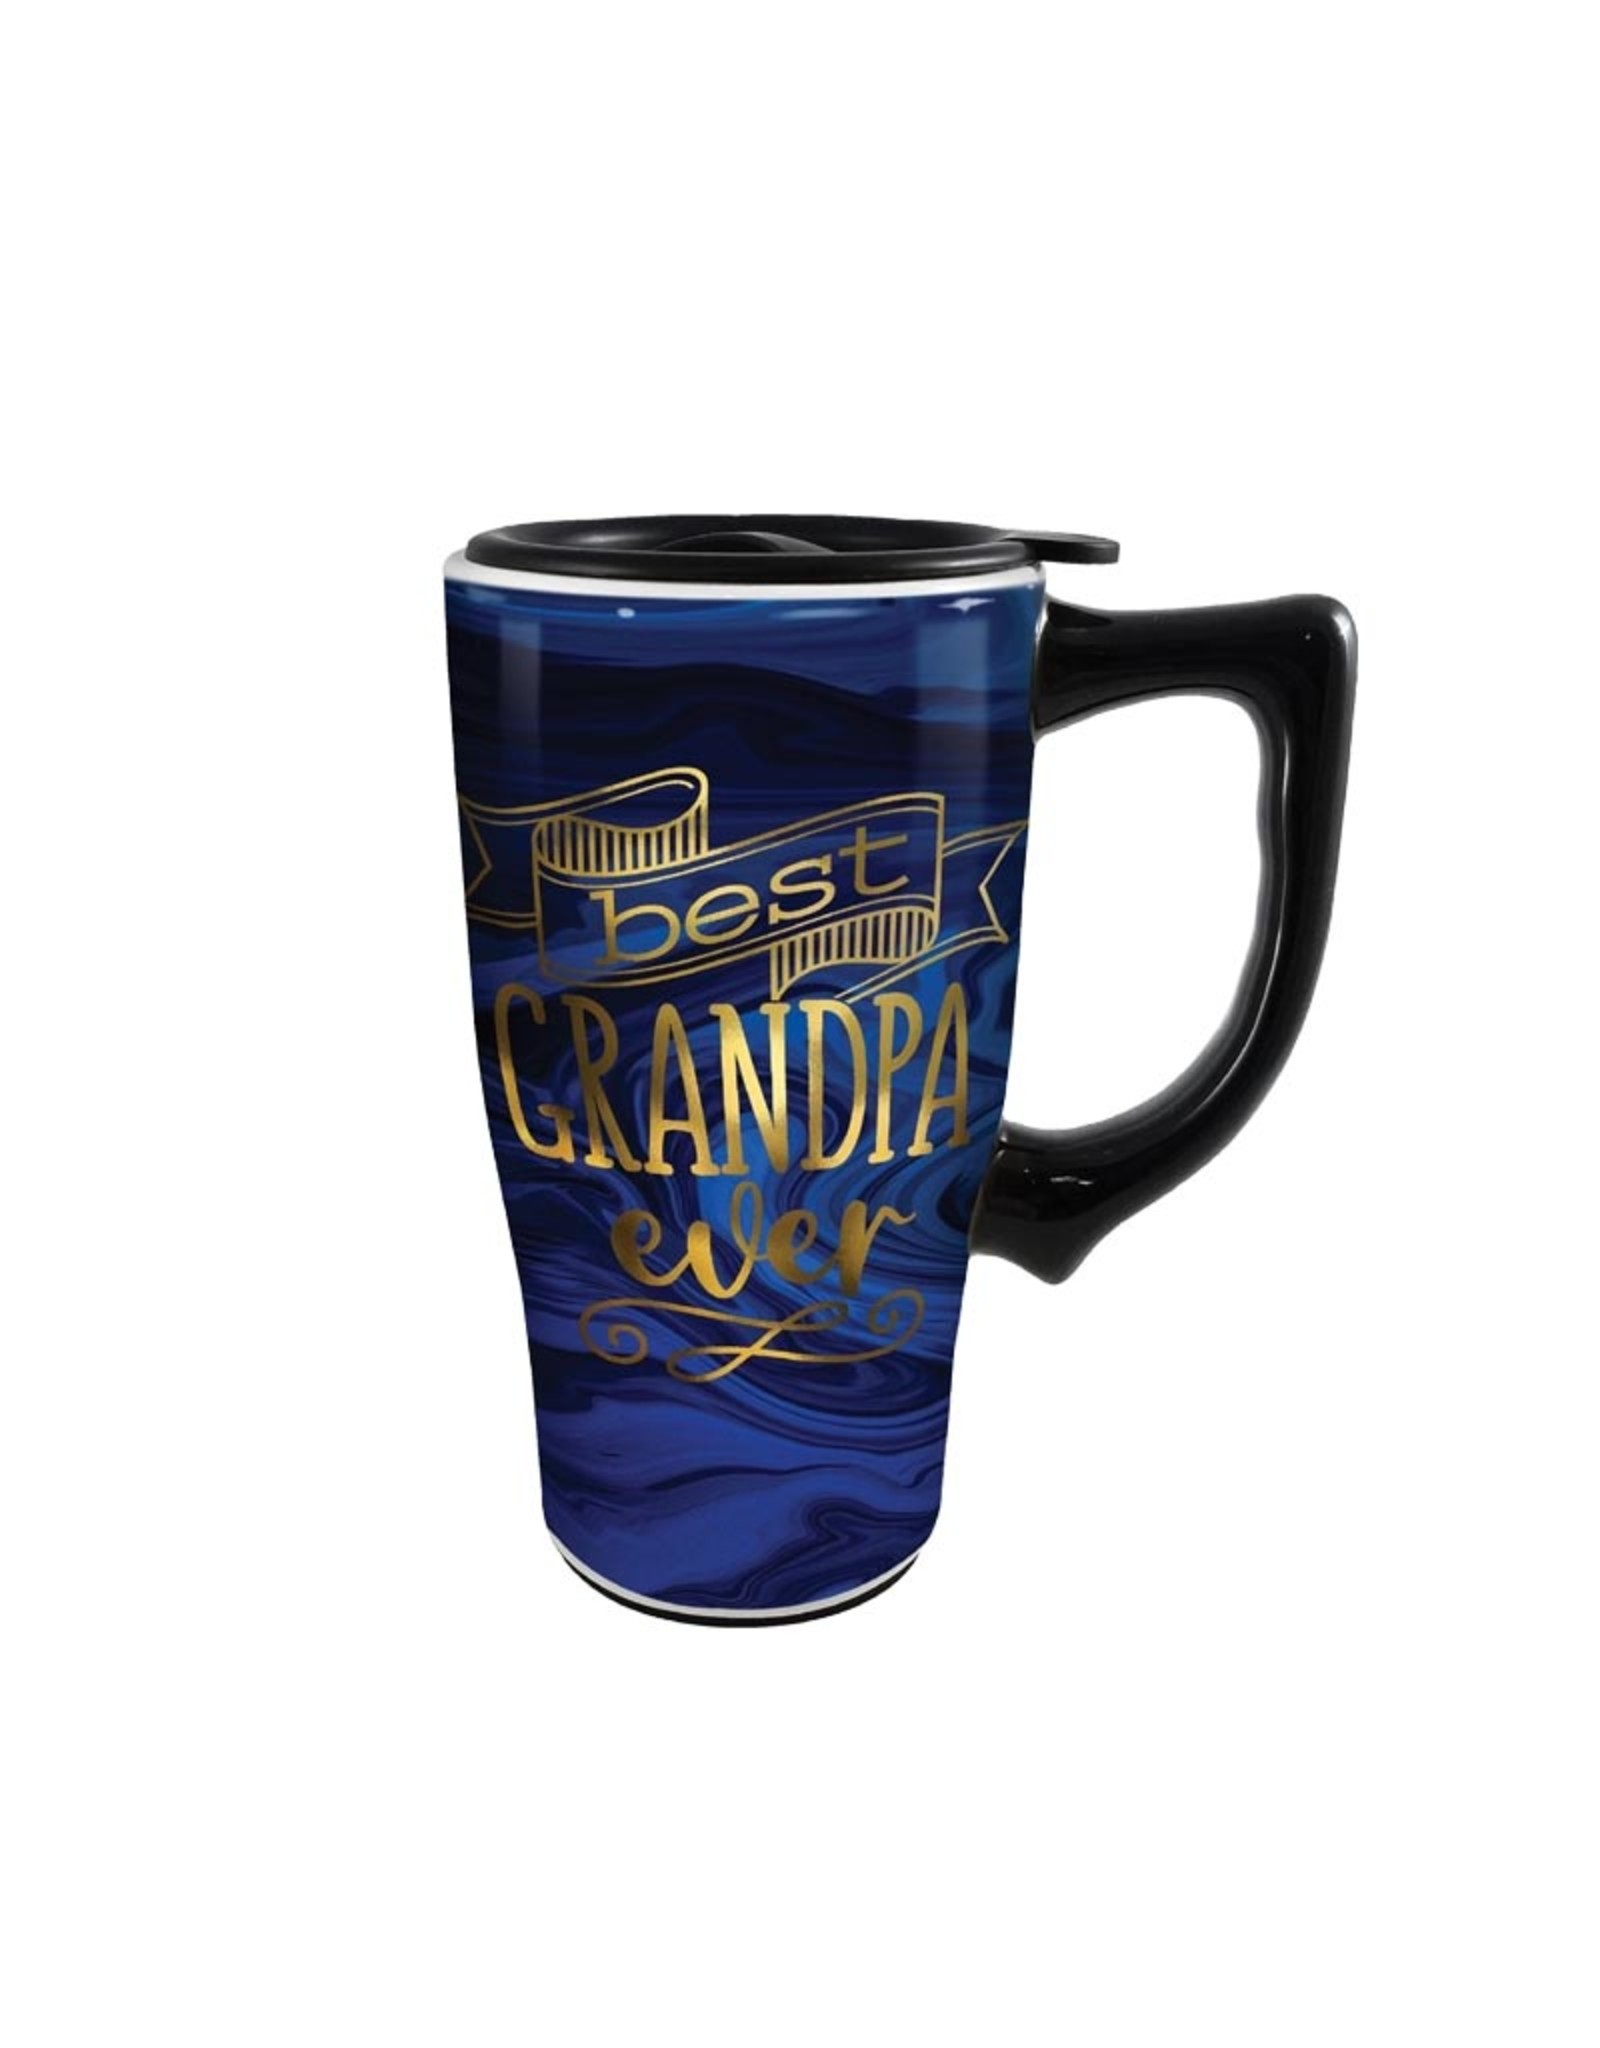 Best Grandpa ( Ceramic Travel Mug )